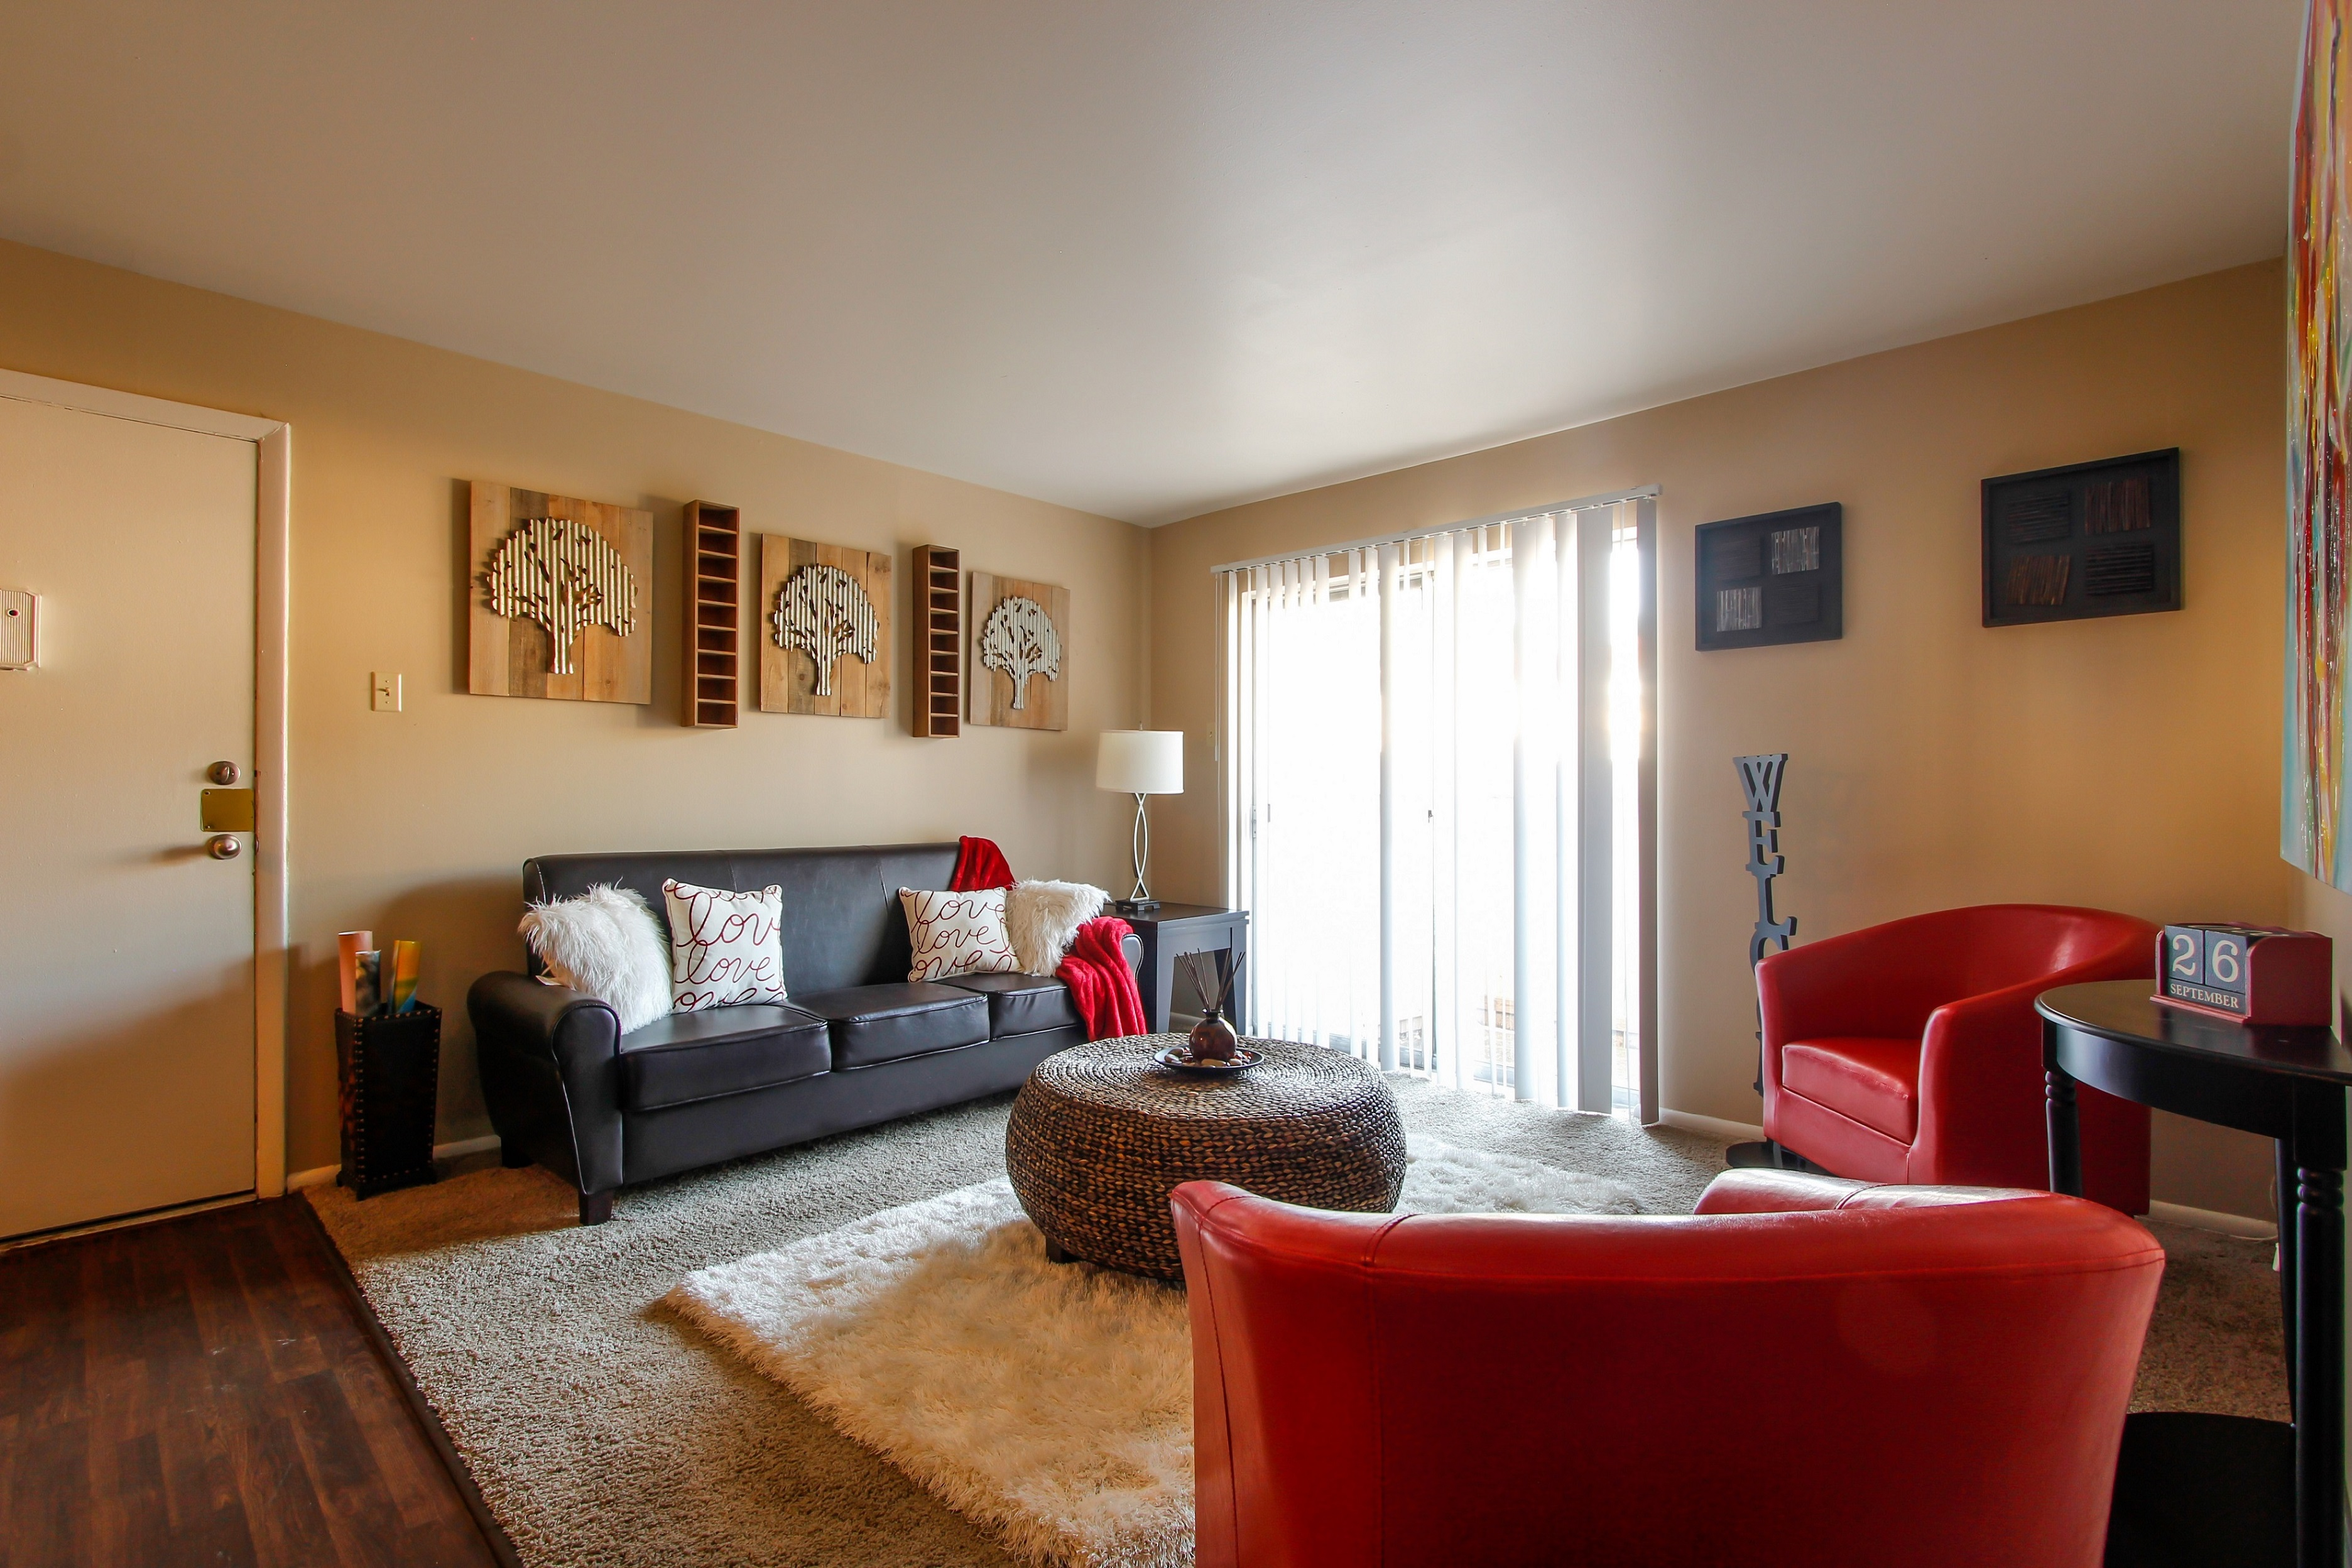 Apartments Near Lindenwood Cedar Trace for Lindenwood University Students in Saint Charles, MO